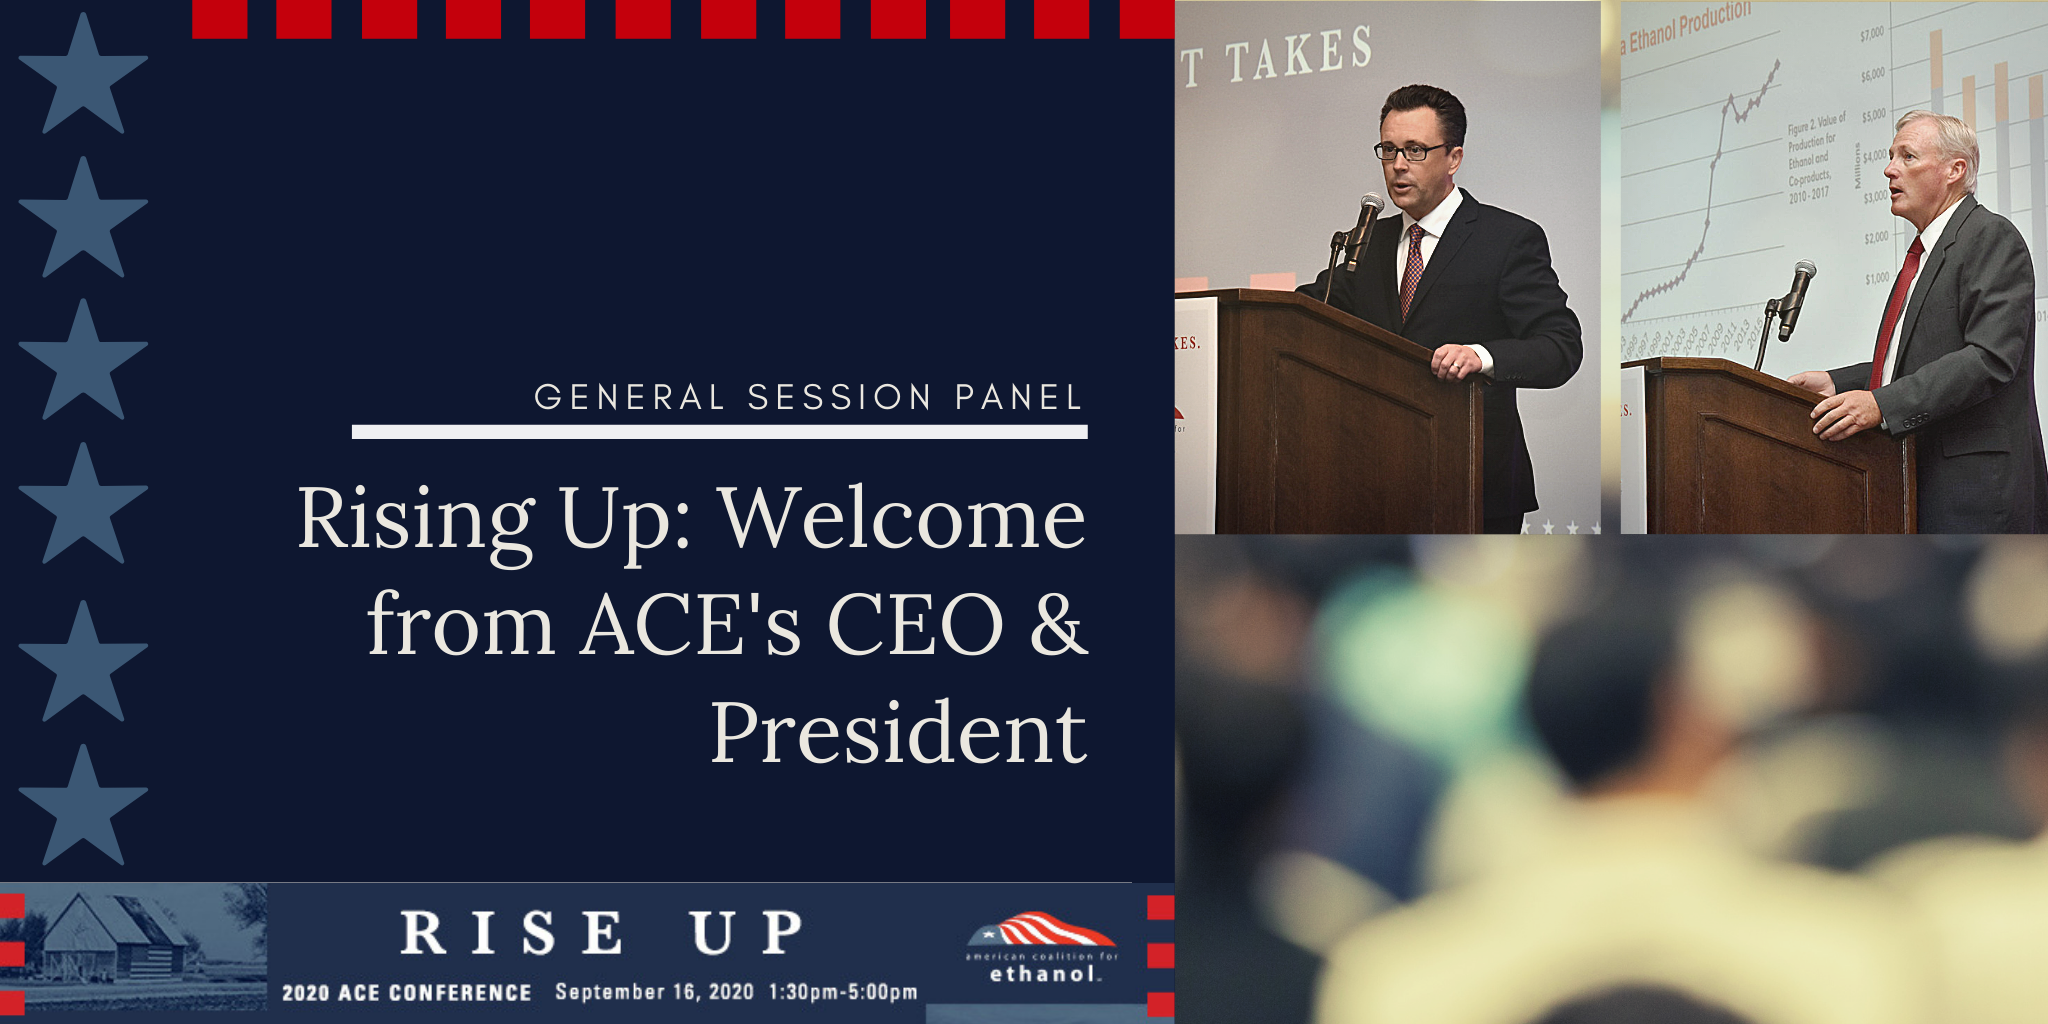 ACE Leadership Addresses Virtual Conference Attendees, Issues Update to Pre-Recorded Content